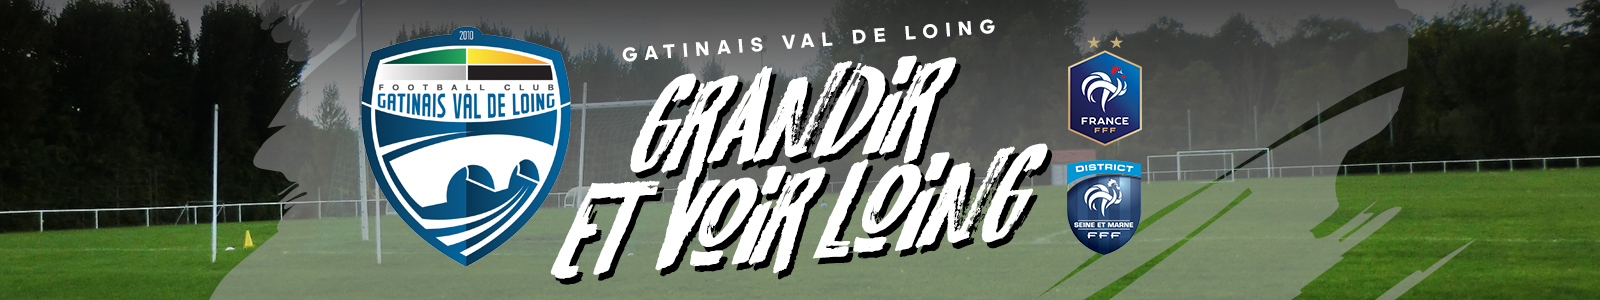 GATINAIS VAL DE LOING FC : site officiel du club de foot de CHATEAU LANDON - footeo